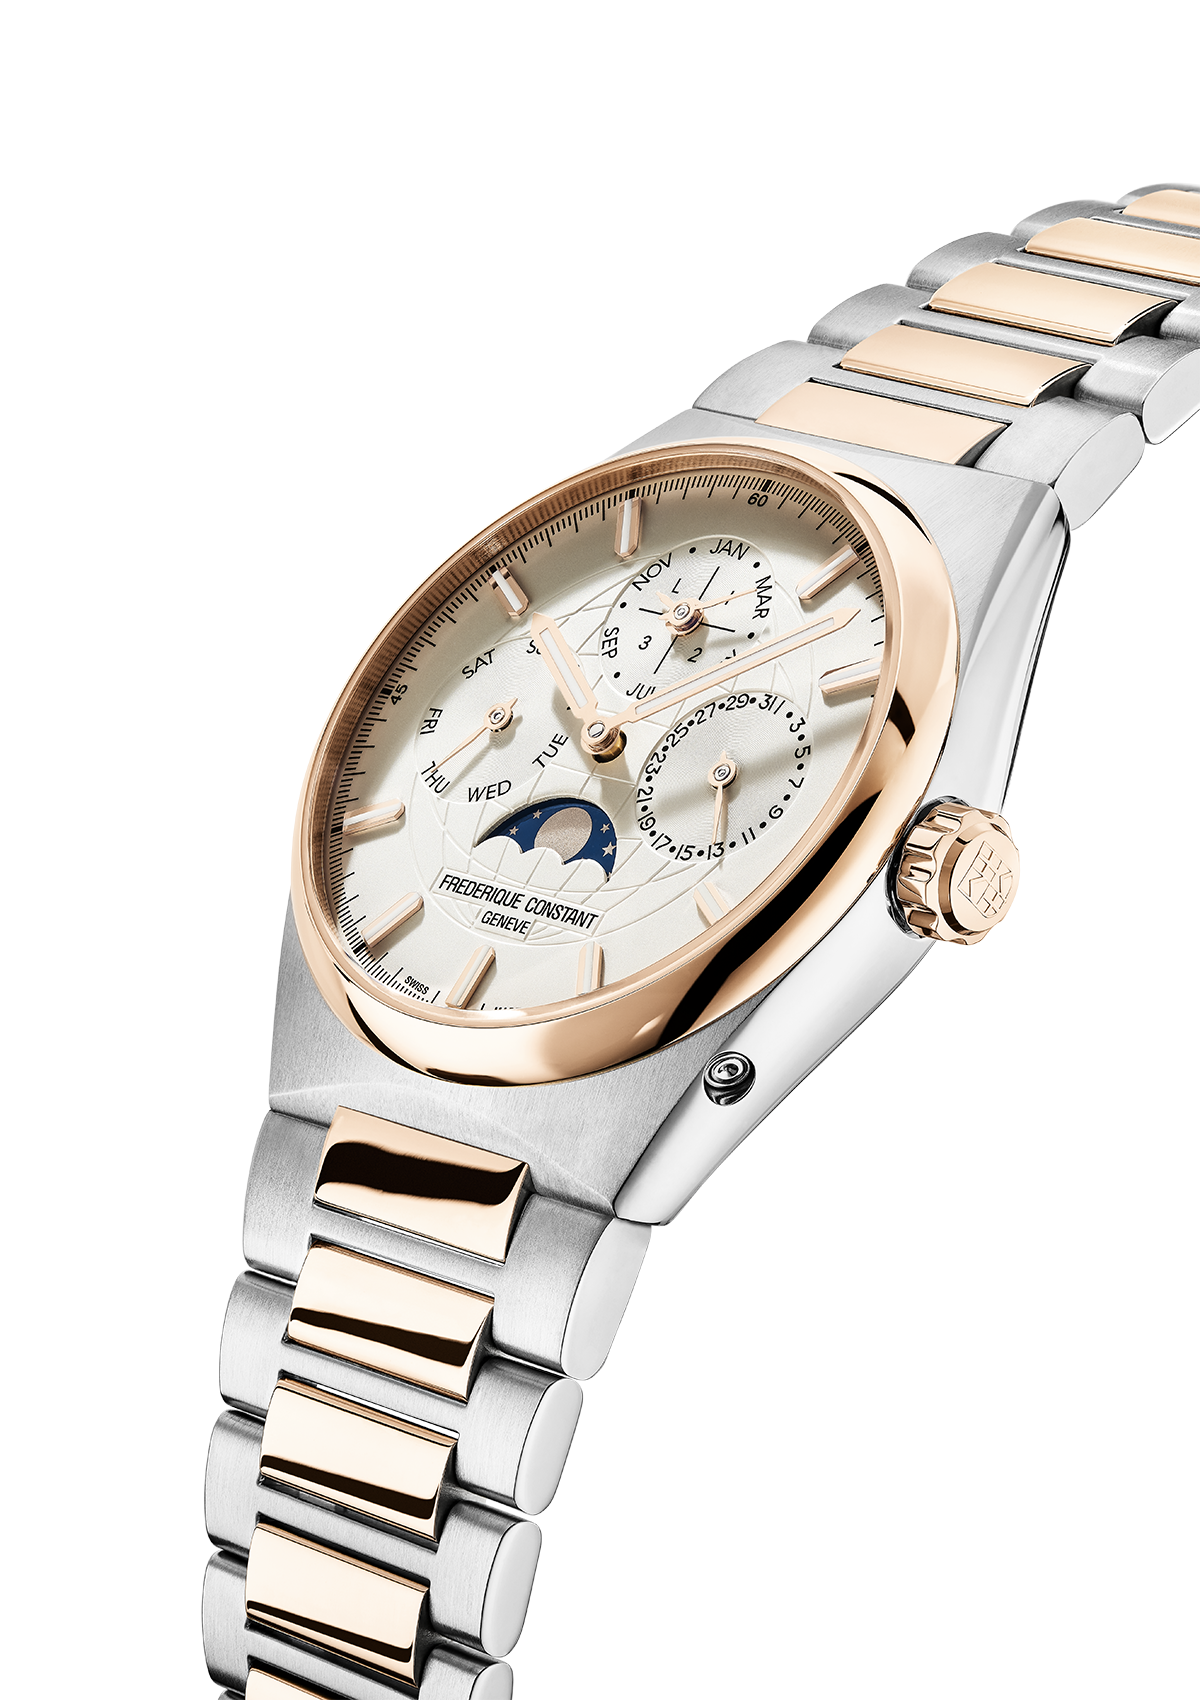 exquisite wristwatches